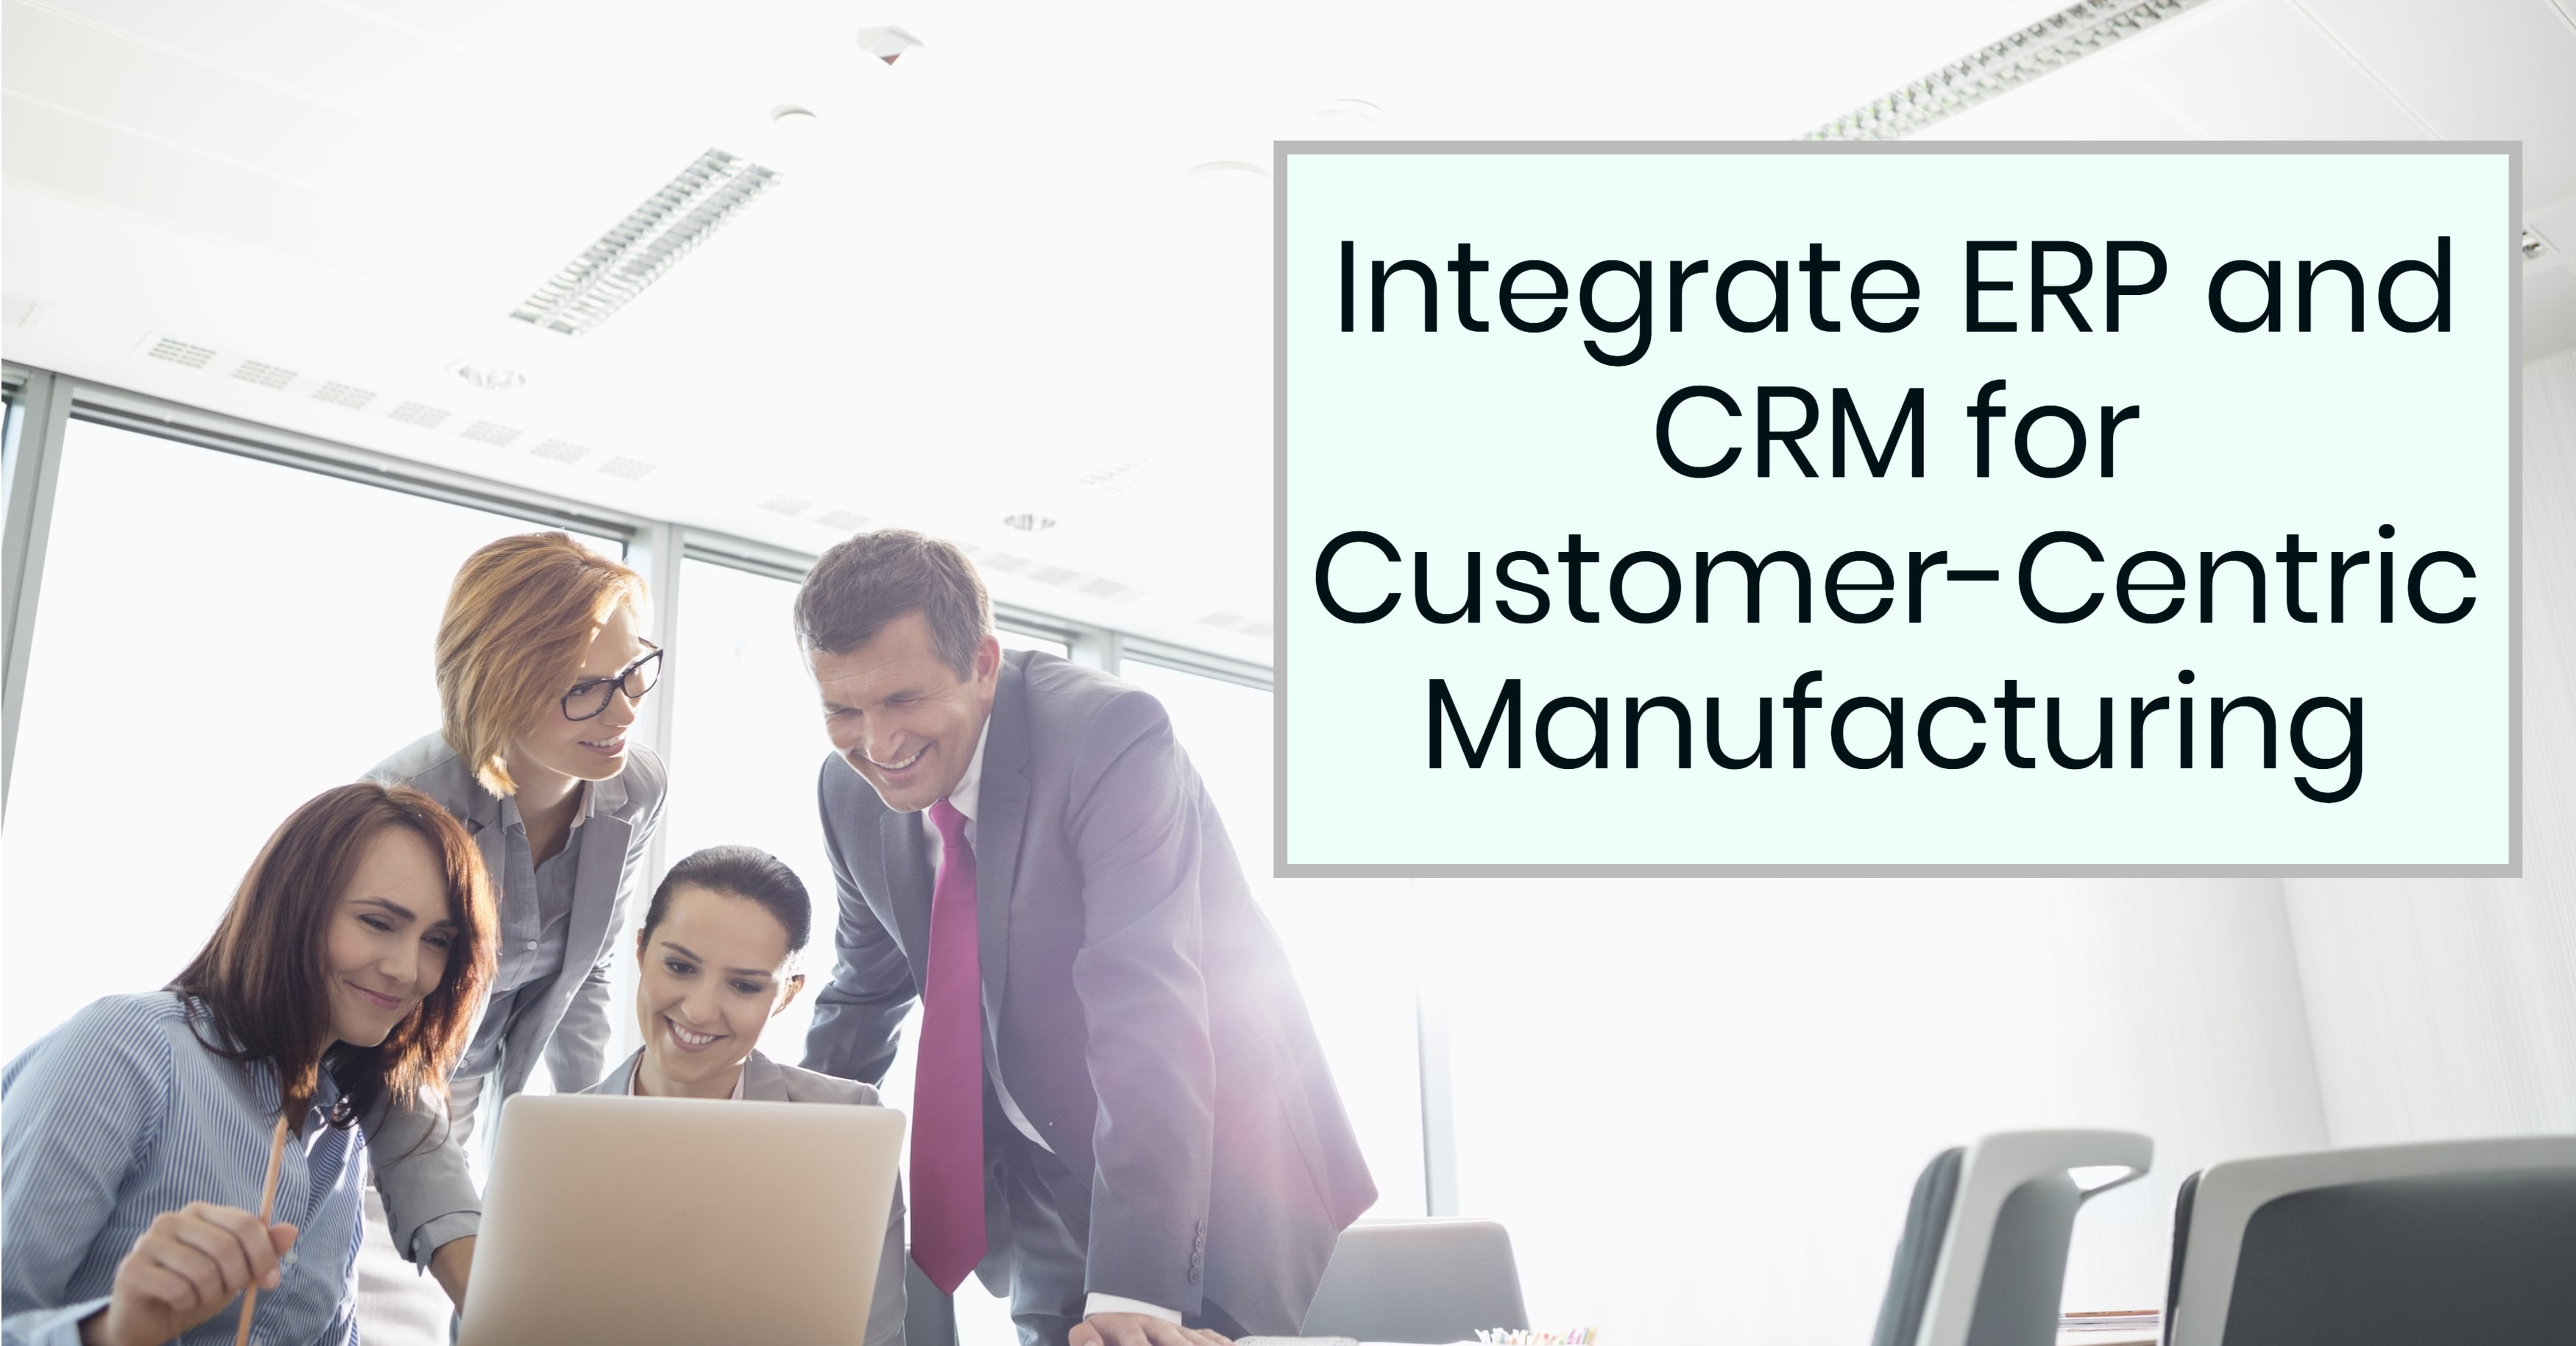 Integrate ERP and CRM for Customer-Centric Manufacturing